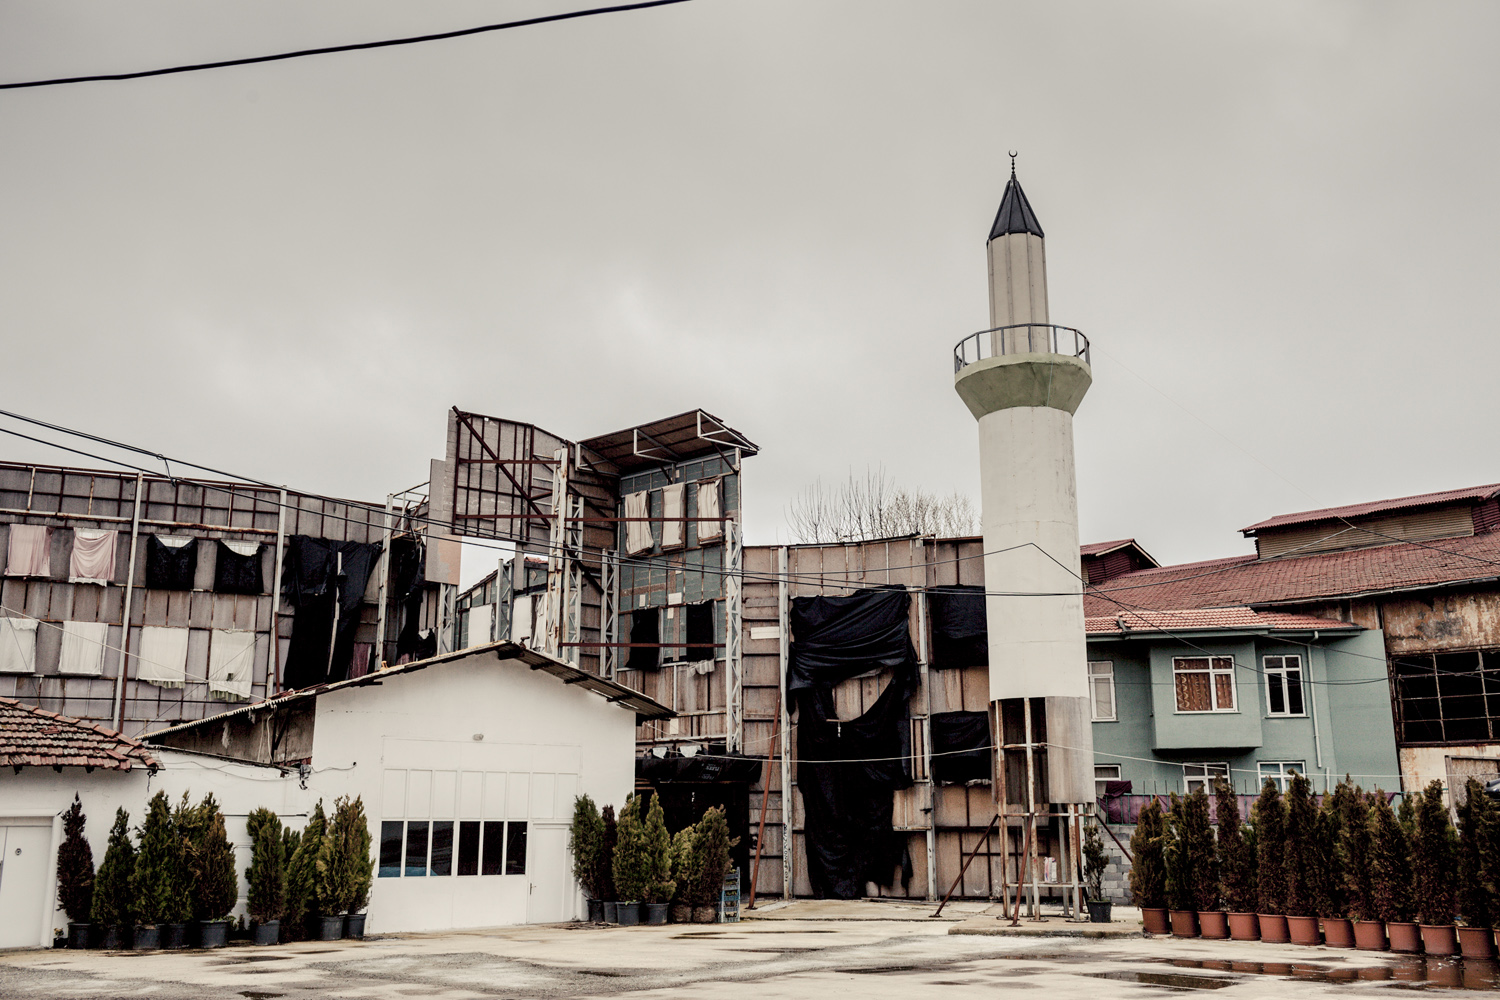 A fake Mosque being built on a film lot, Beykoz district, Istanbul, February 2013.